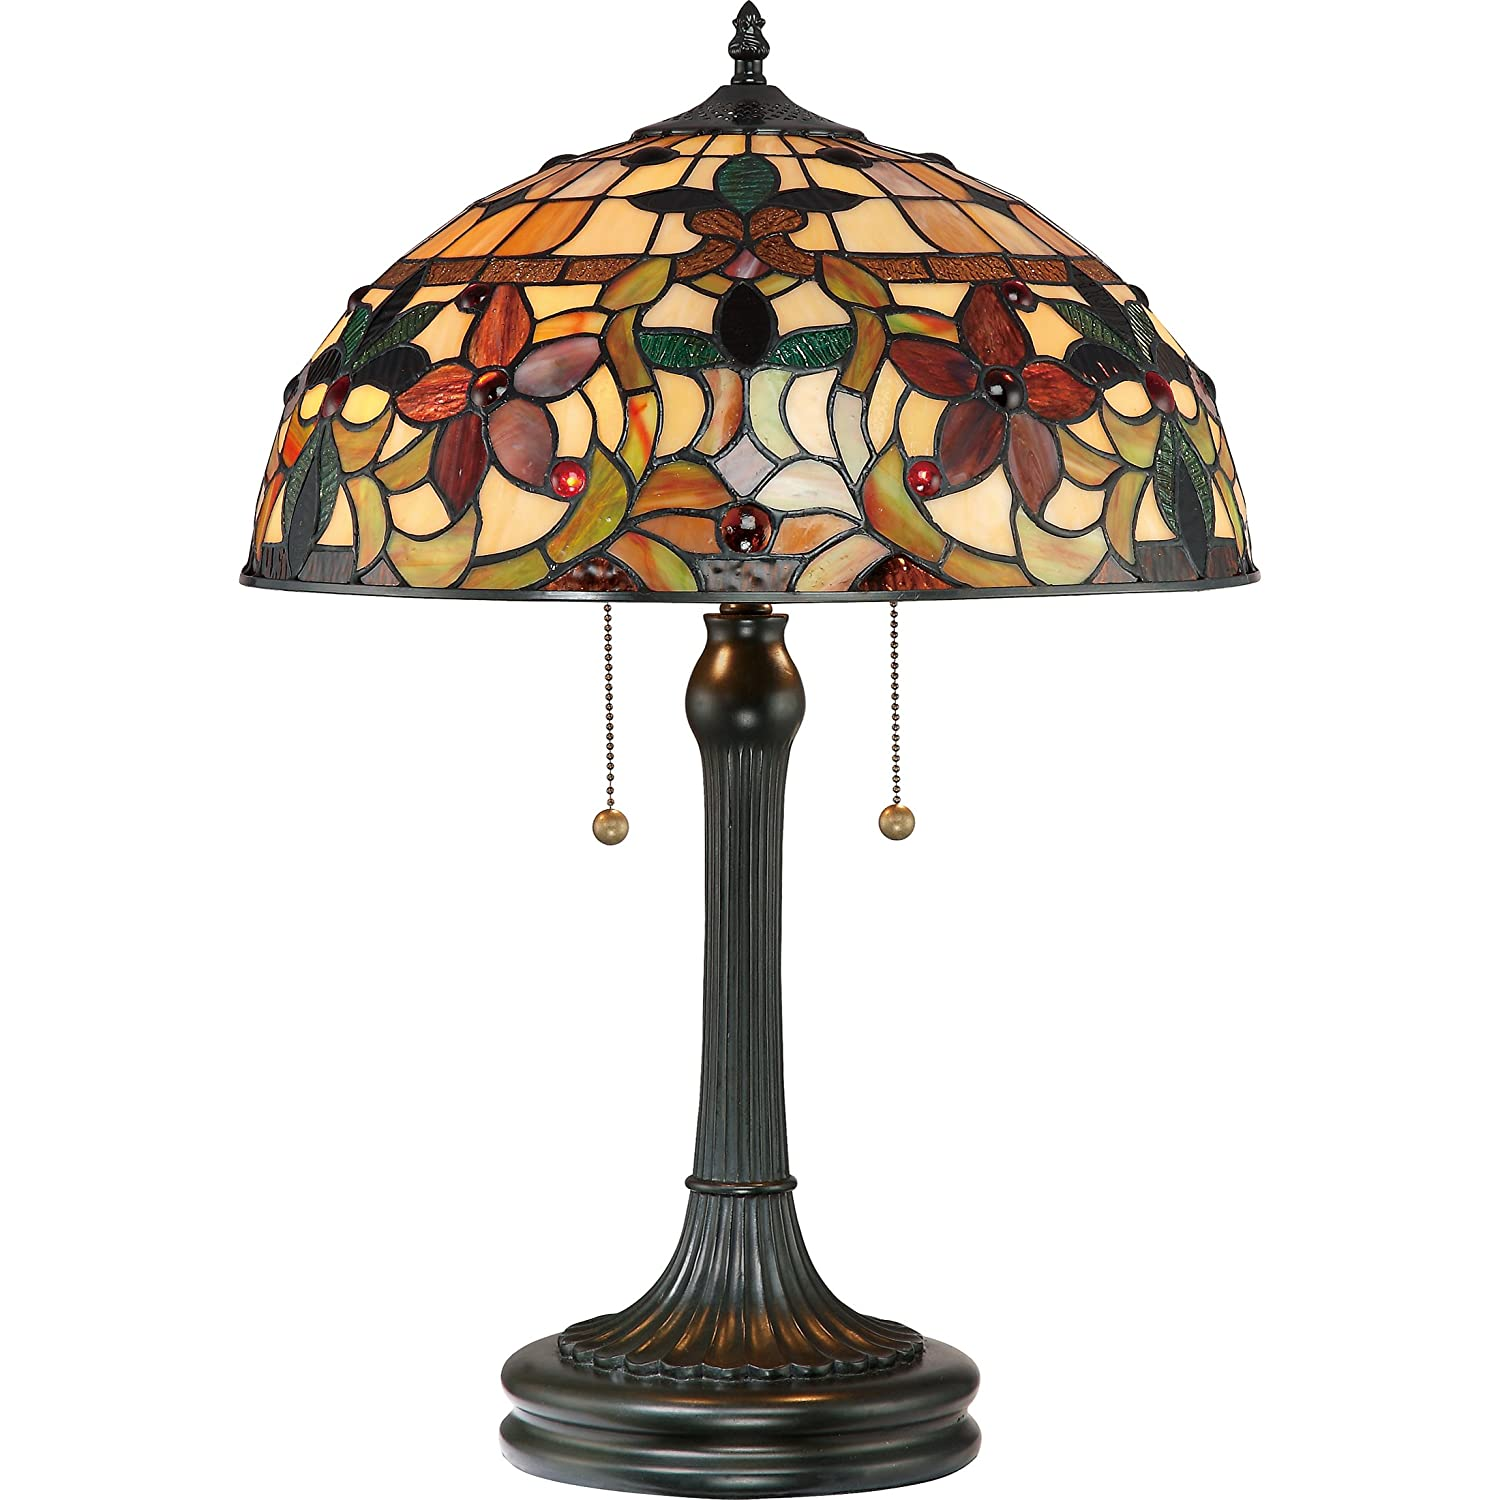 Quoizel TF878T Kami 2 Light Tiffany Table Lamp Vintage Bronze